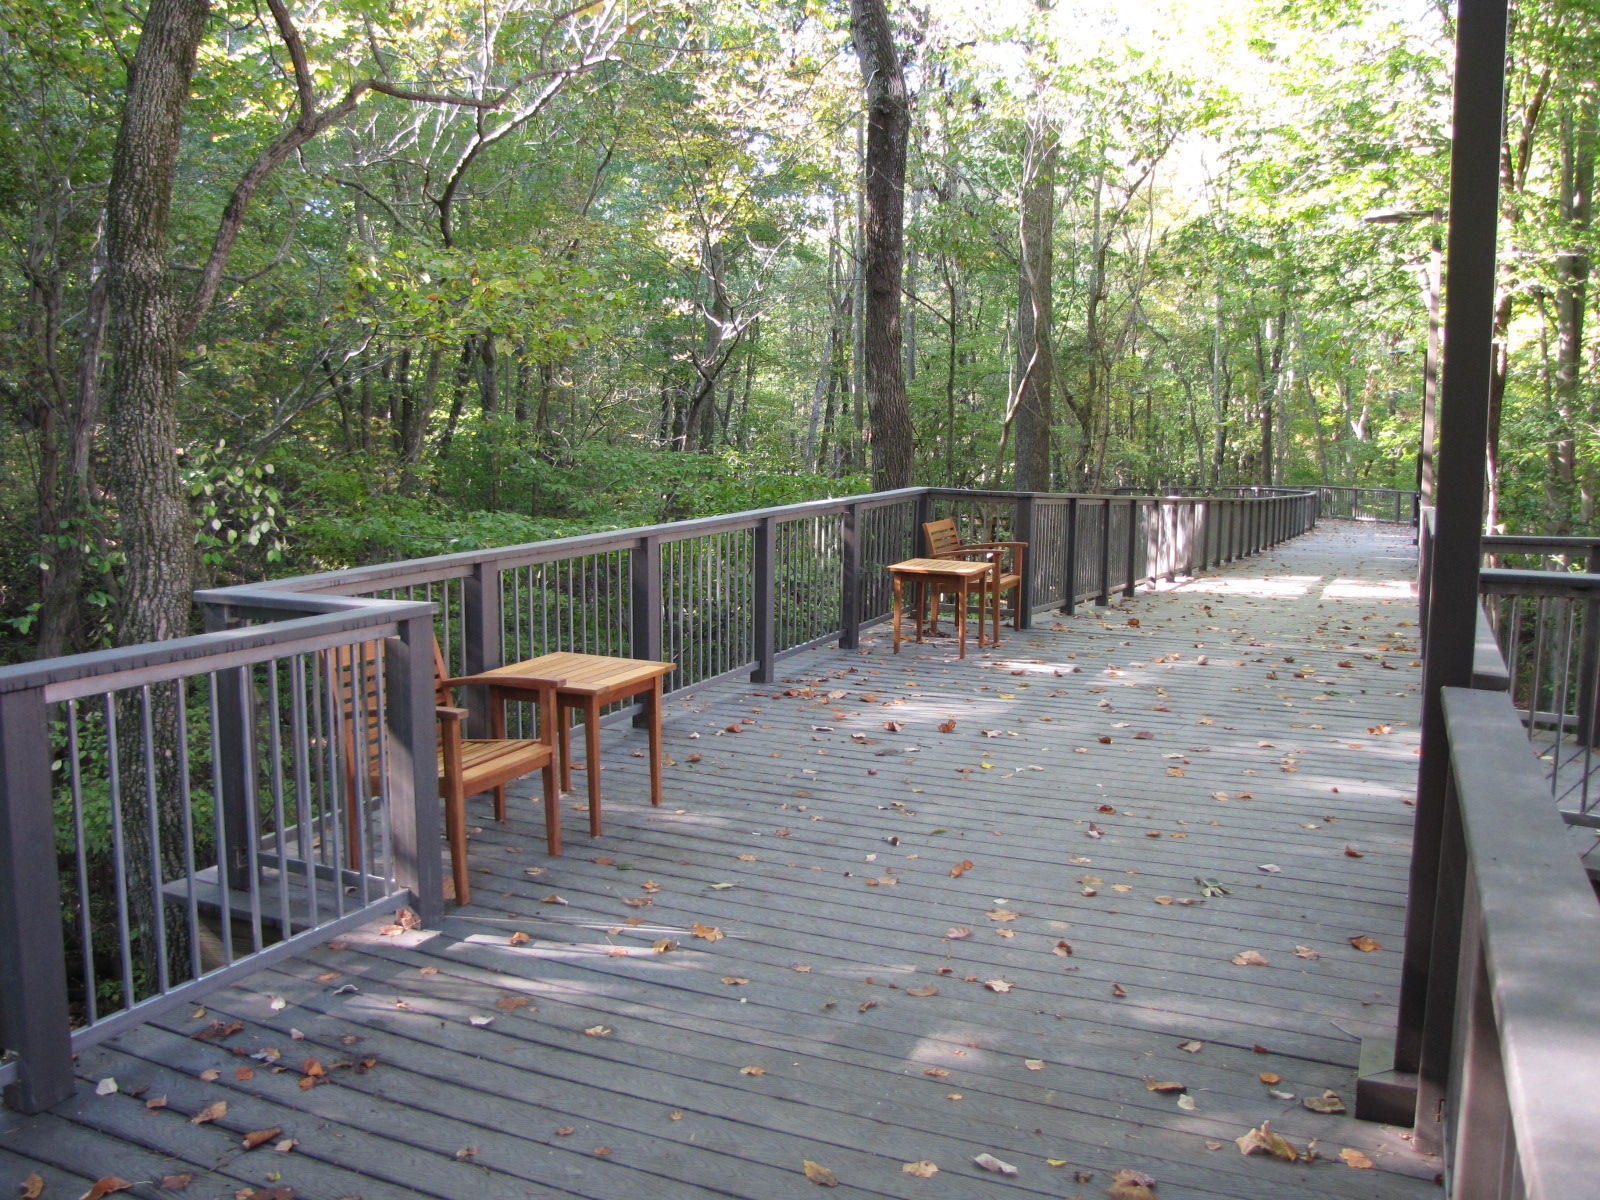 ... In addition to the boardwalk construction, Nature Bridges installed approximately 1,064 lineal feet of custom